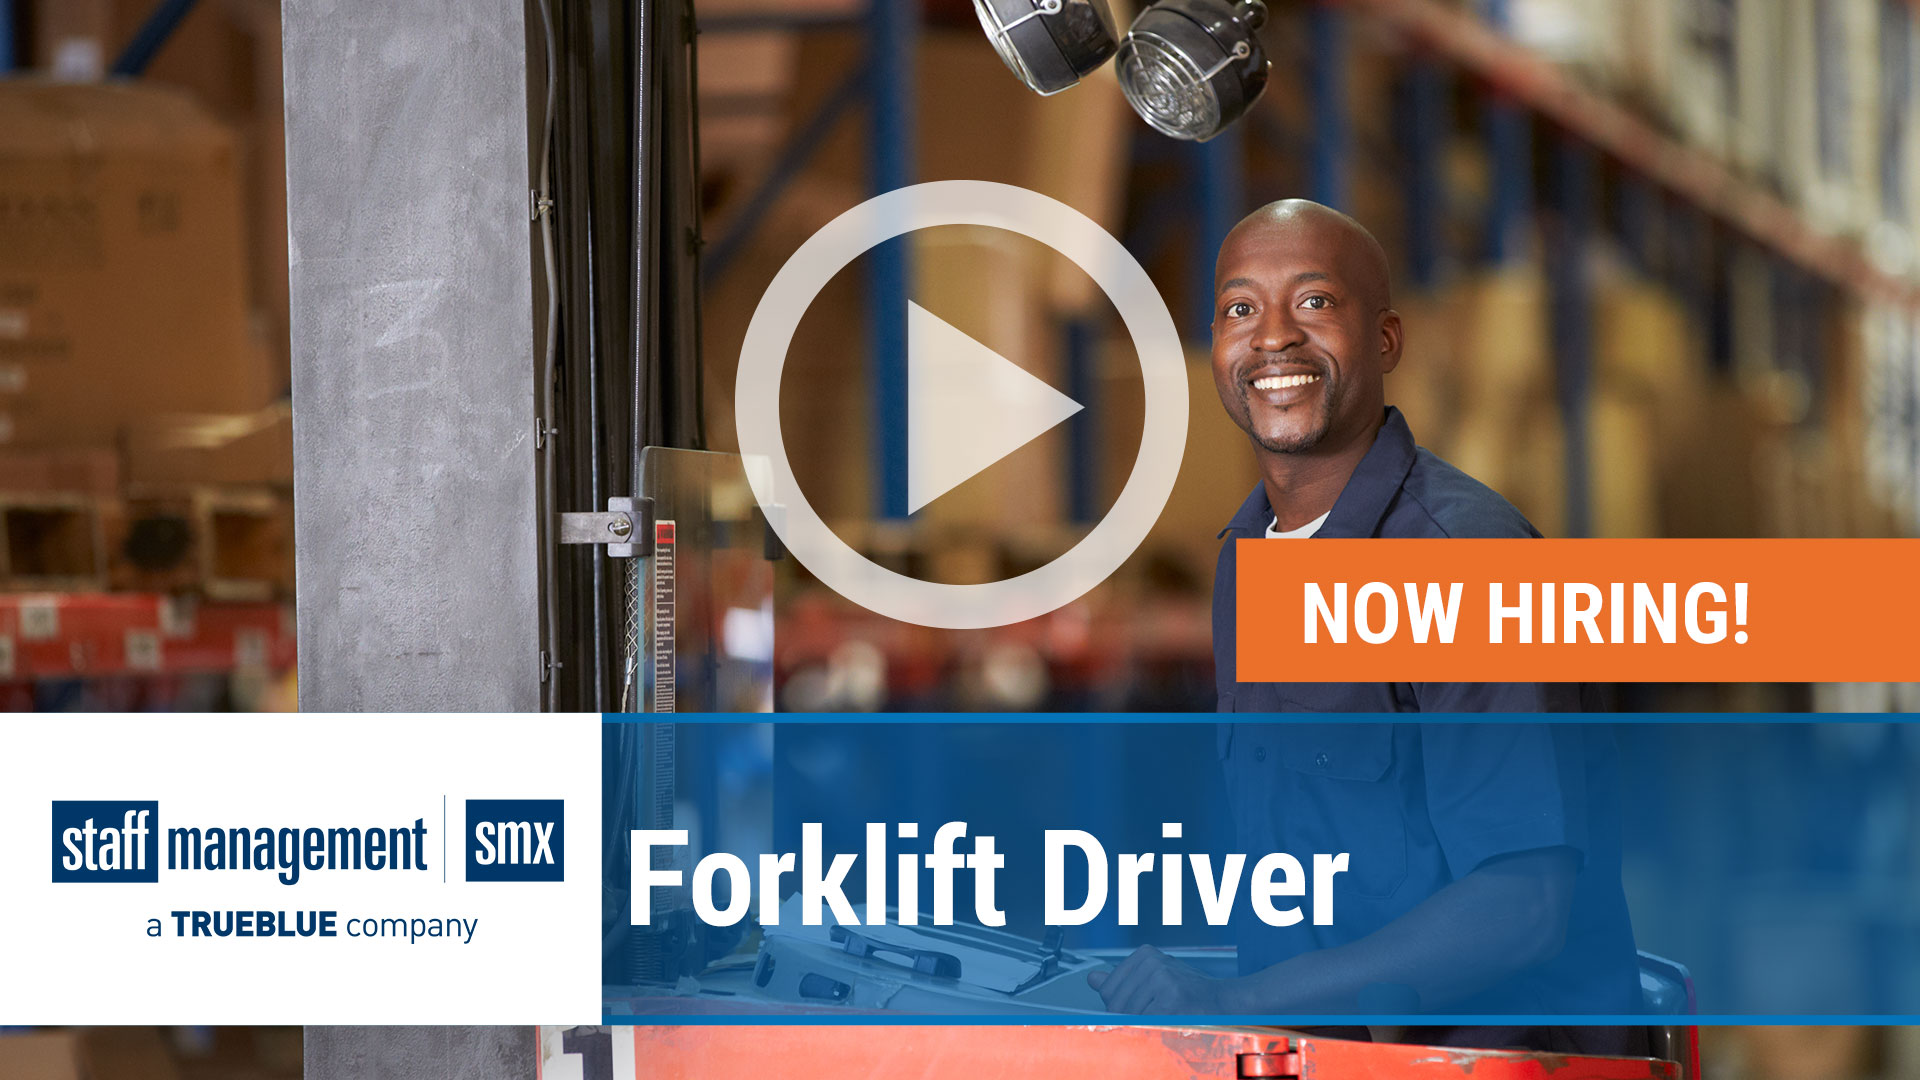 Watch our careers video for available job opening Forklift Driver in TBD, TBD